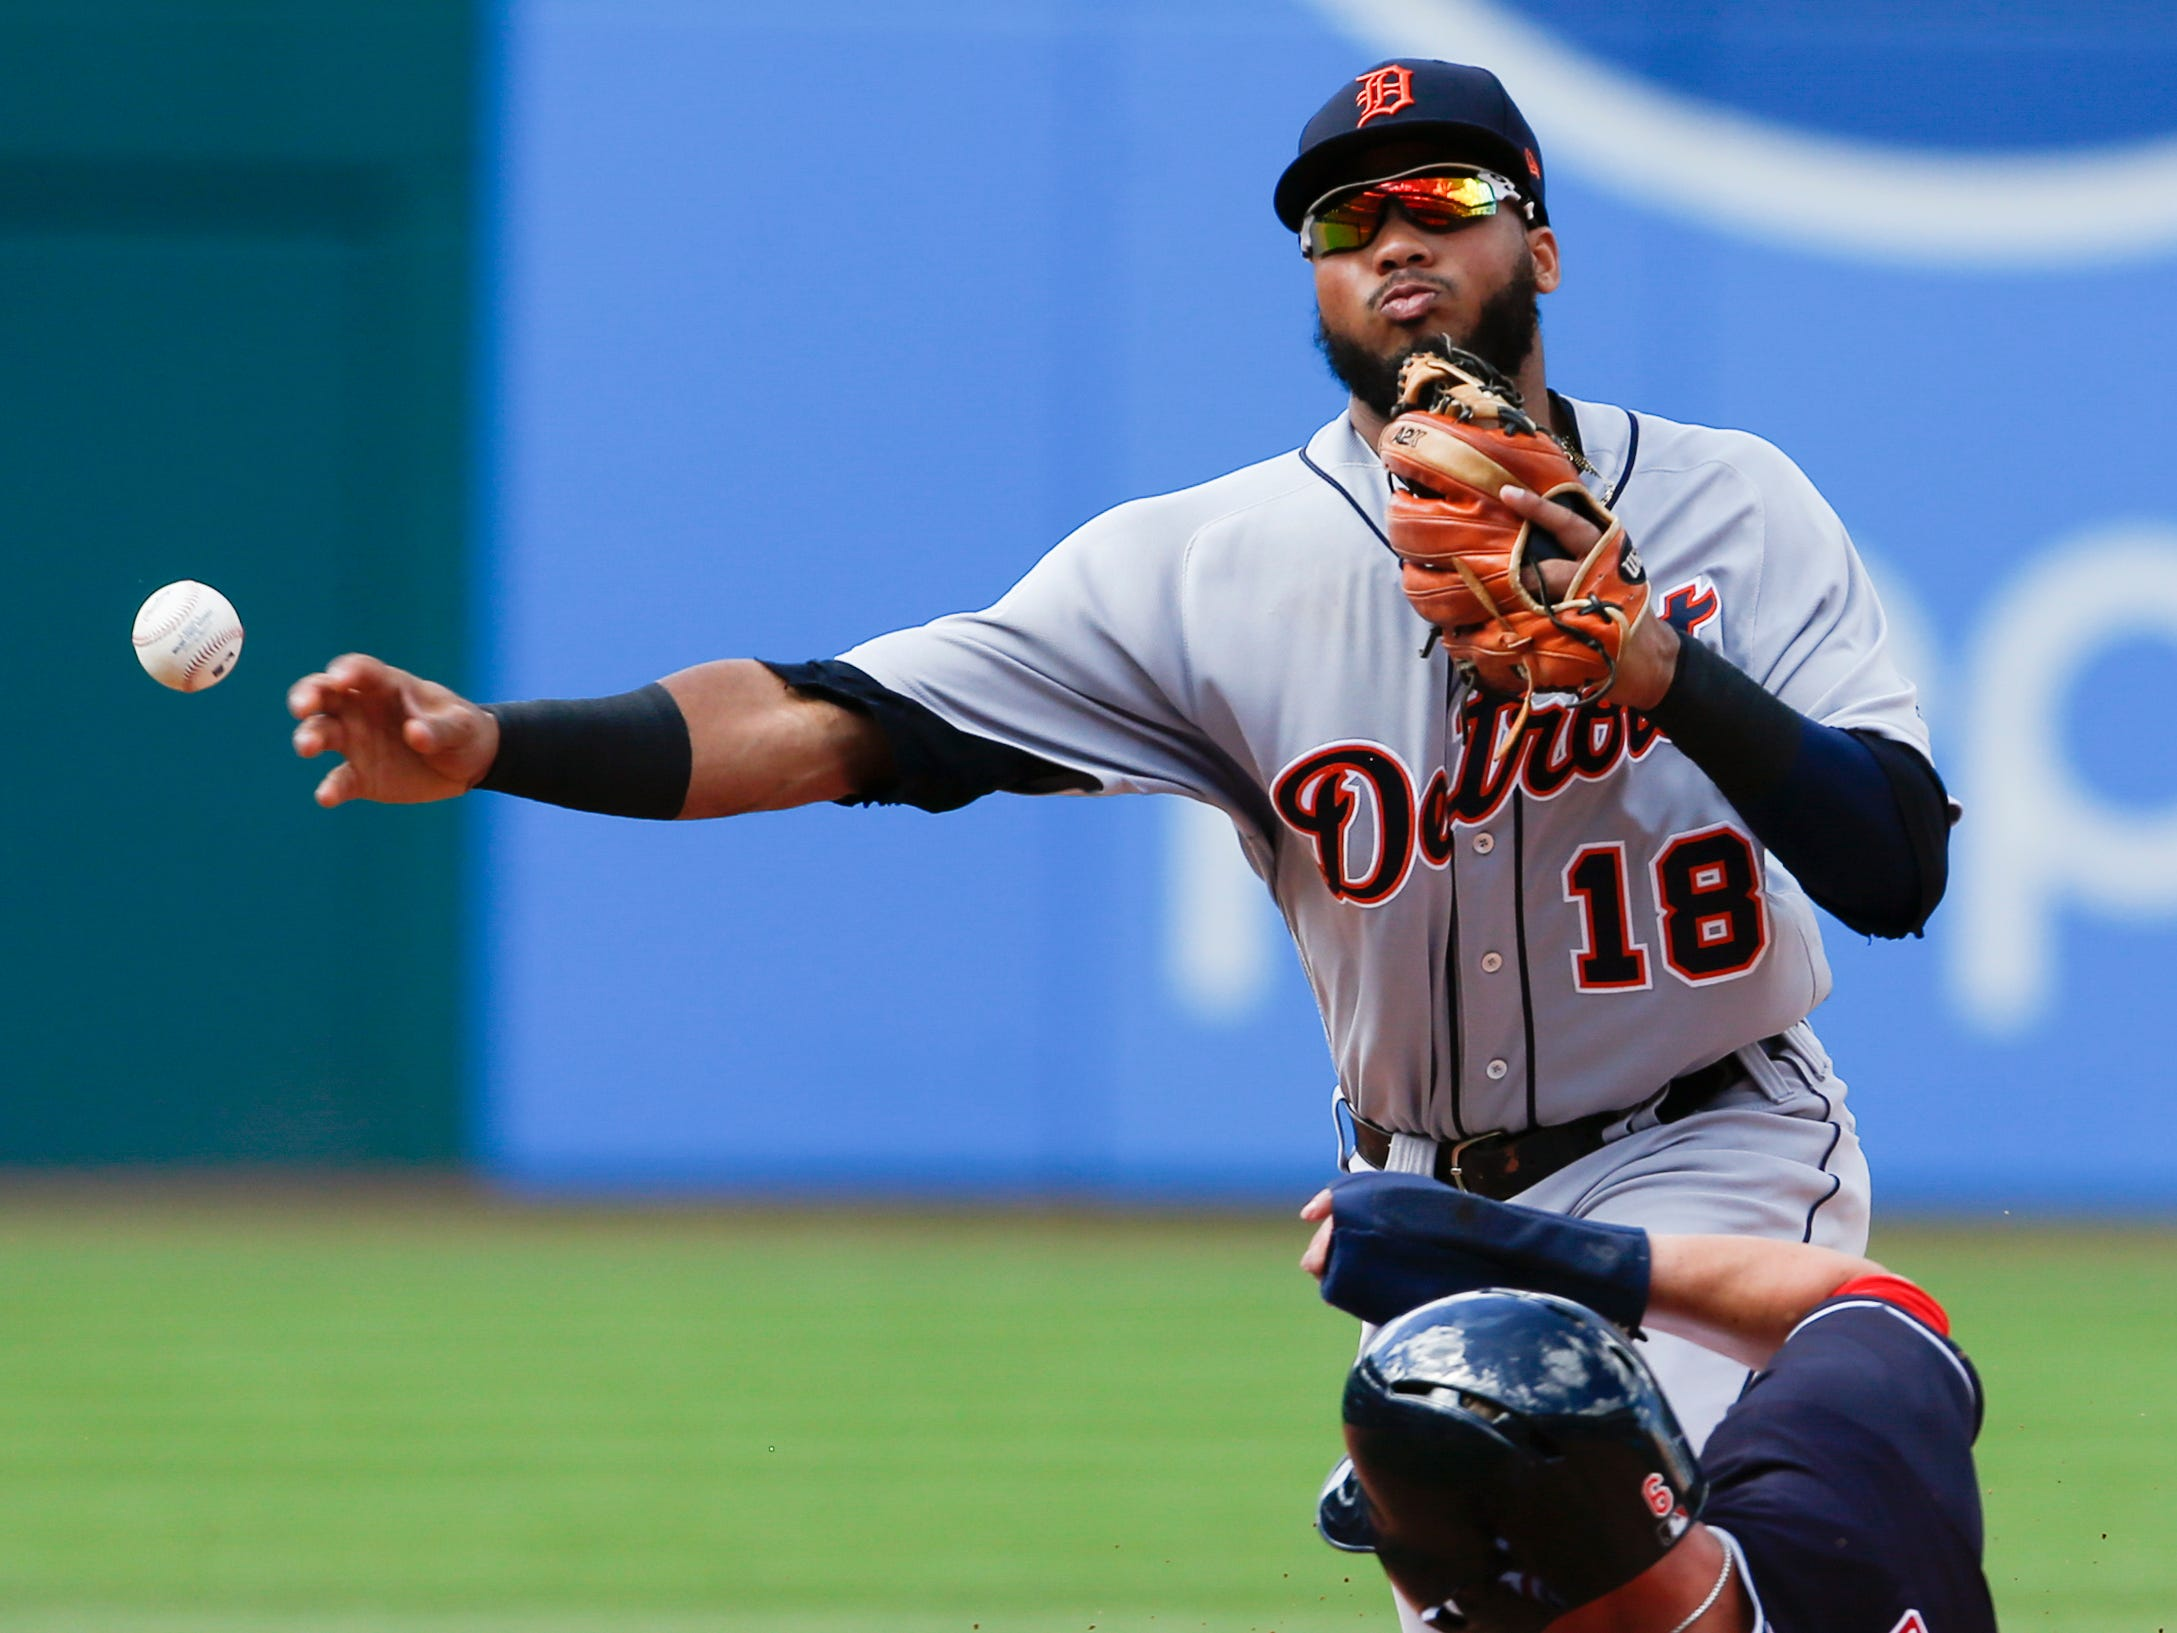 Detroit Tigers' Dawel Lugo forces out Cleveland Indians' Brandon Guyer at second base and throws out Eric Haase at first base to complete the double play during the sixth inning.